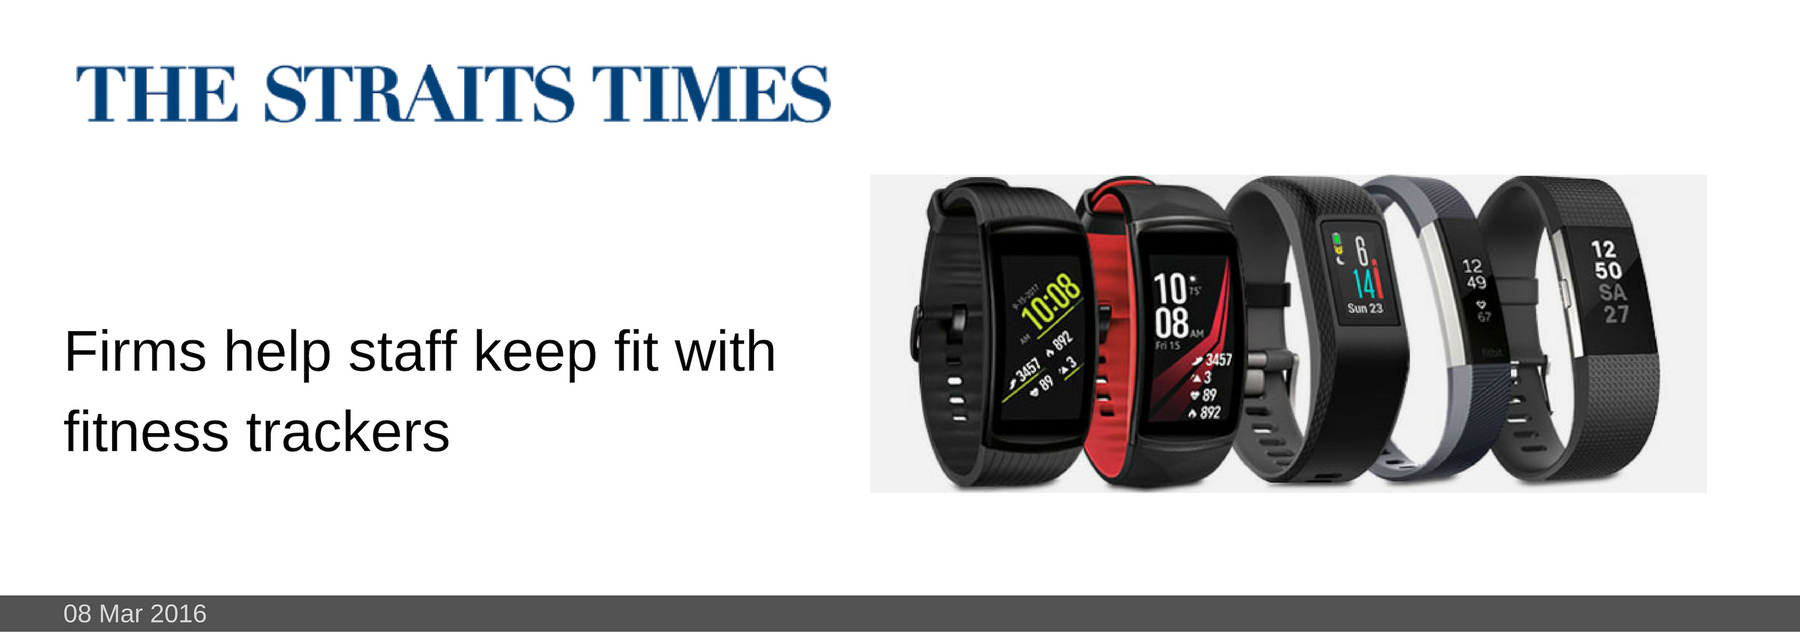 08 MAR 2016: Firms help staff keep fit with fitness trackers